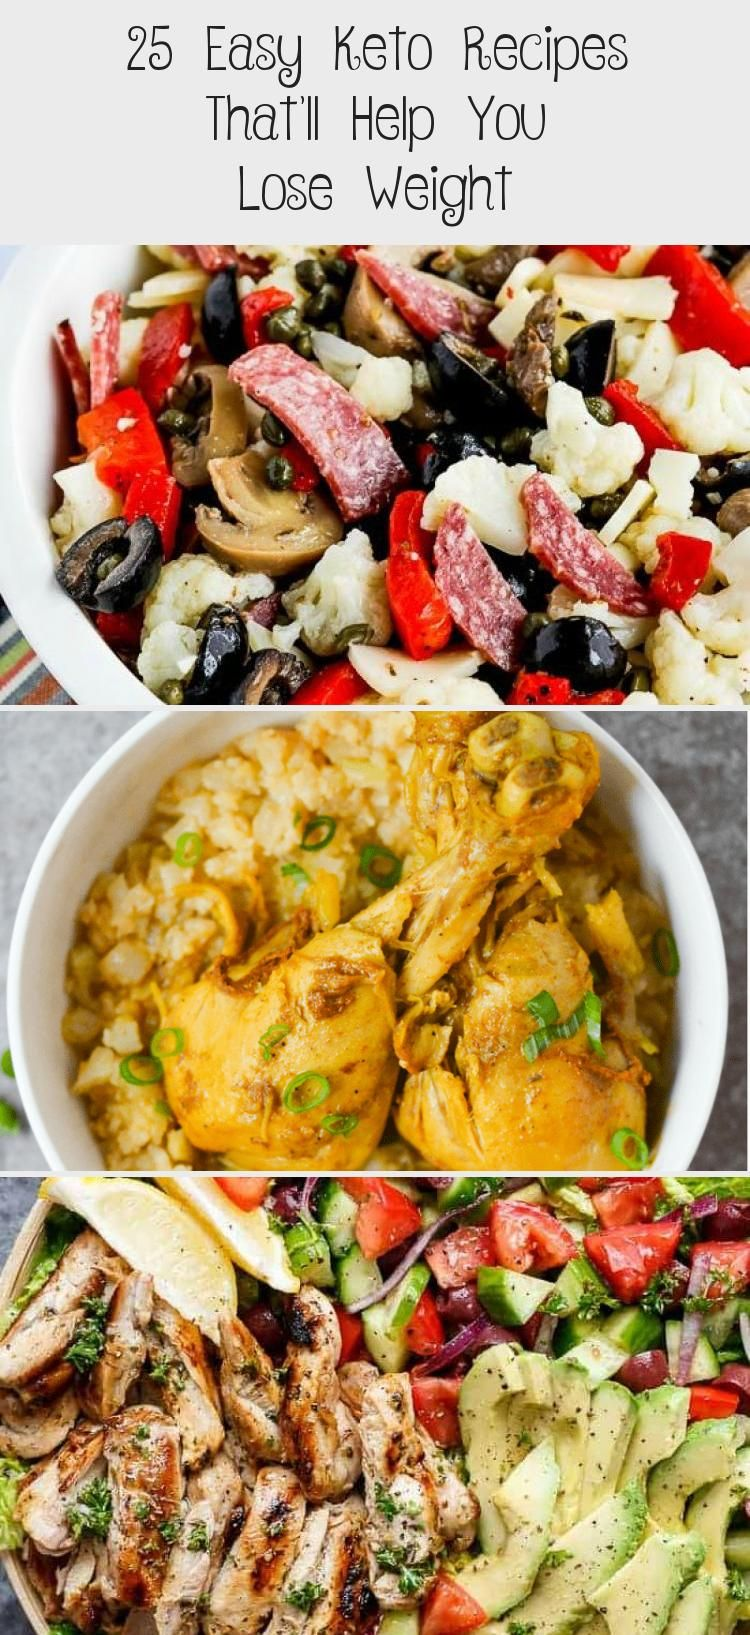 25 Easy Keto Recipes That'll Help You Lose Weight – Keto